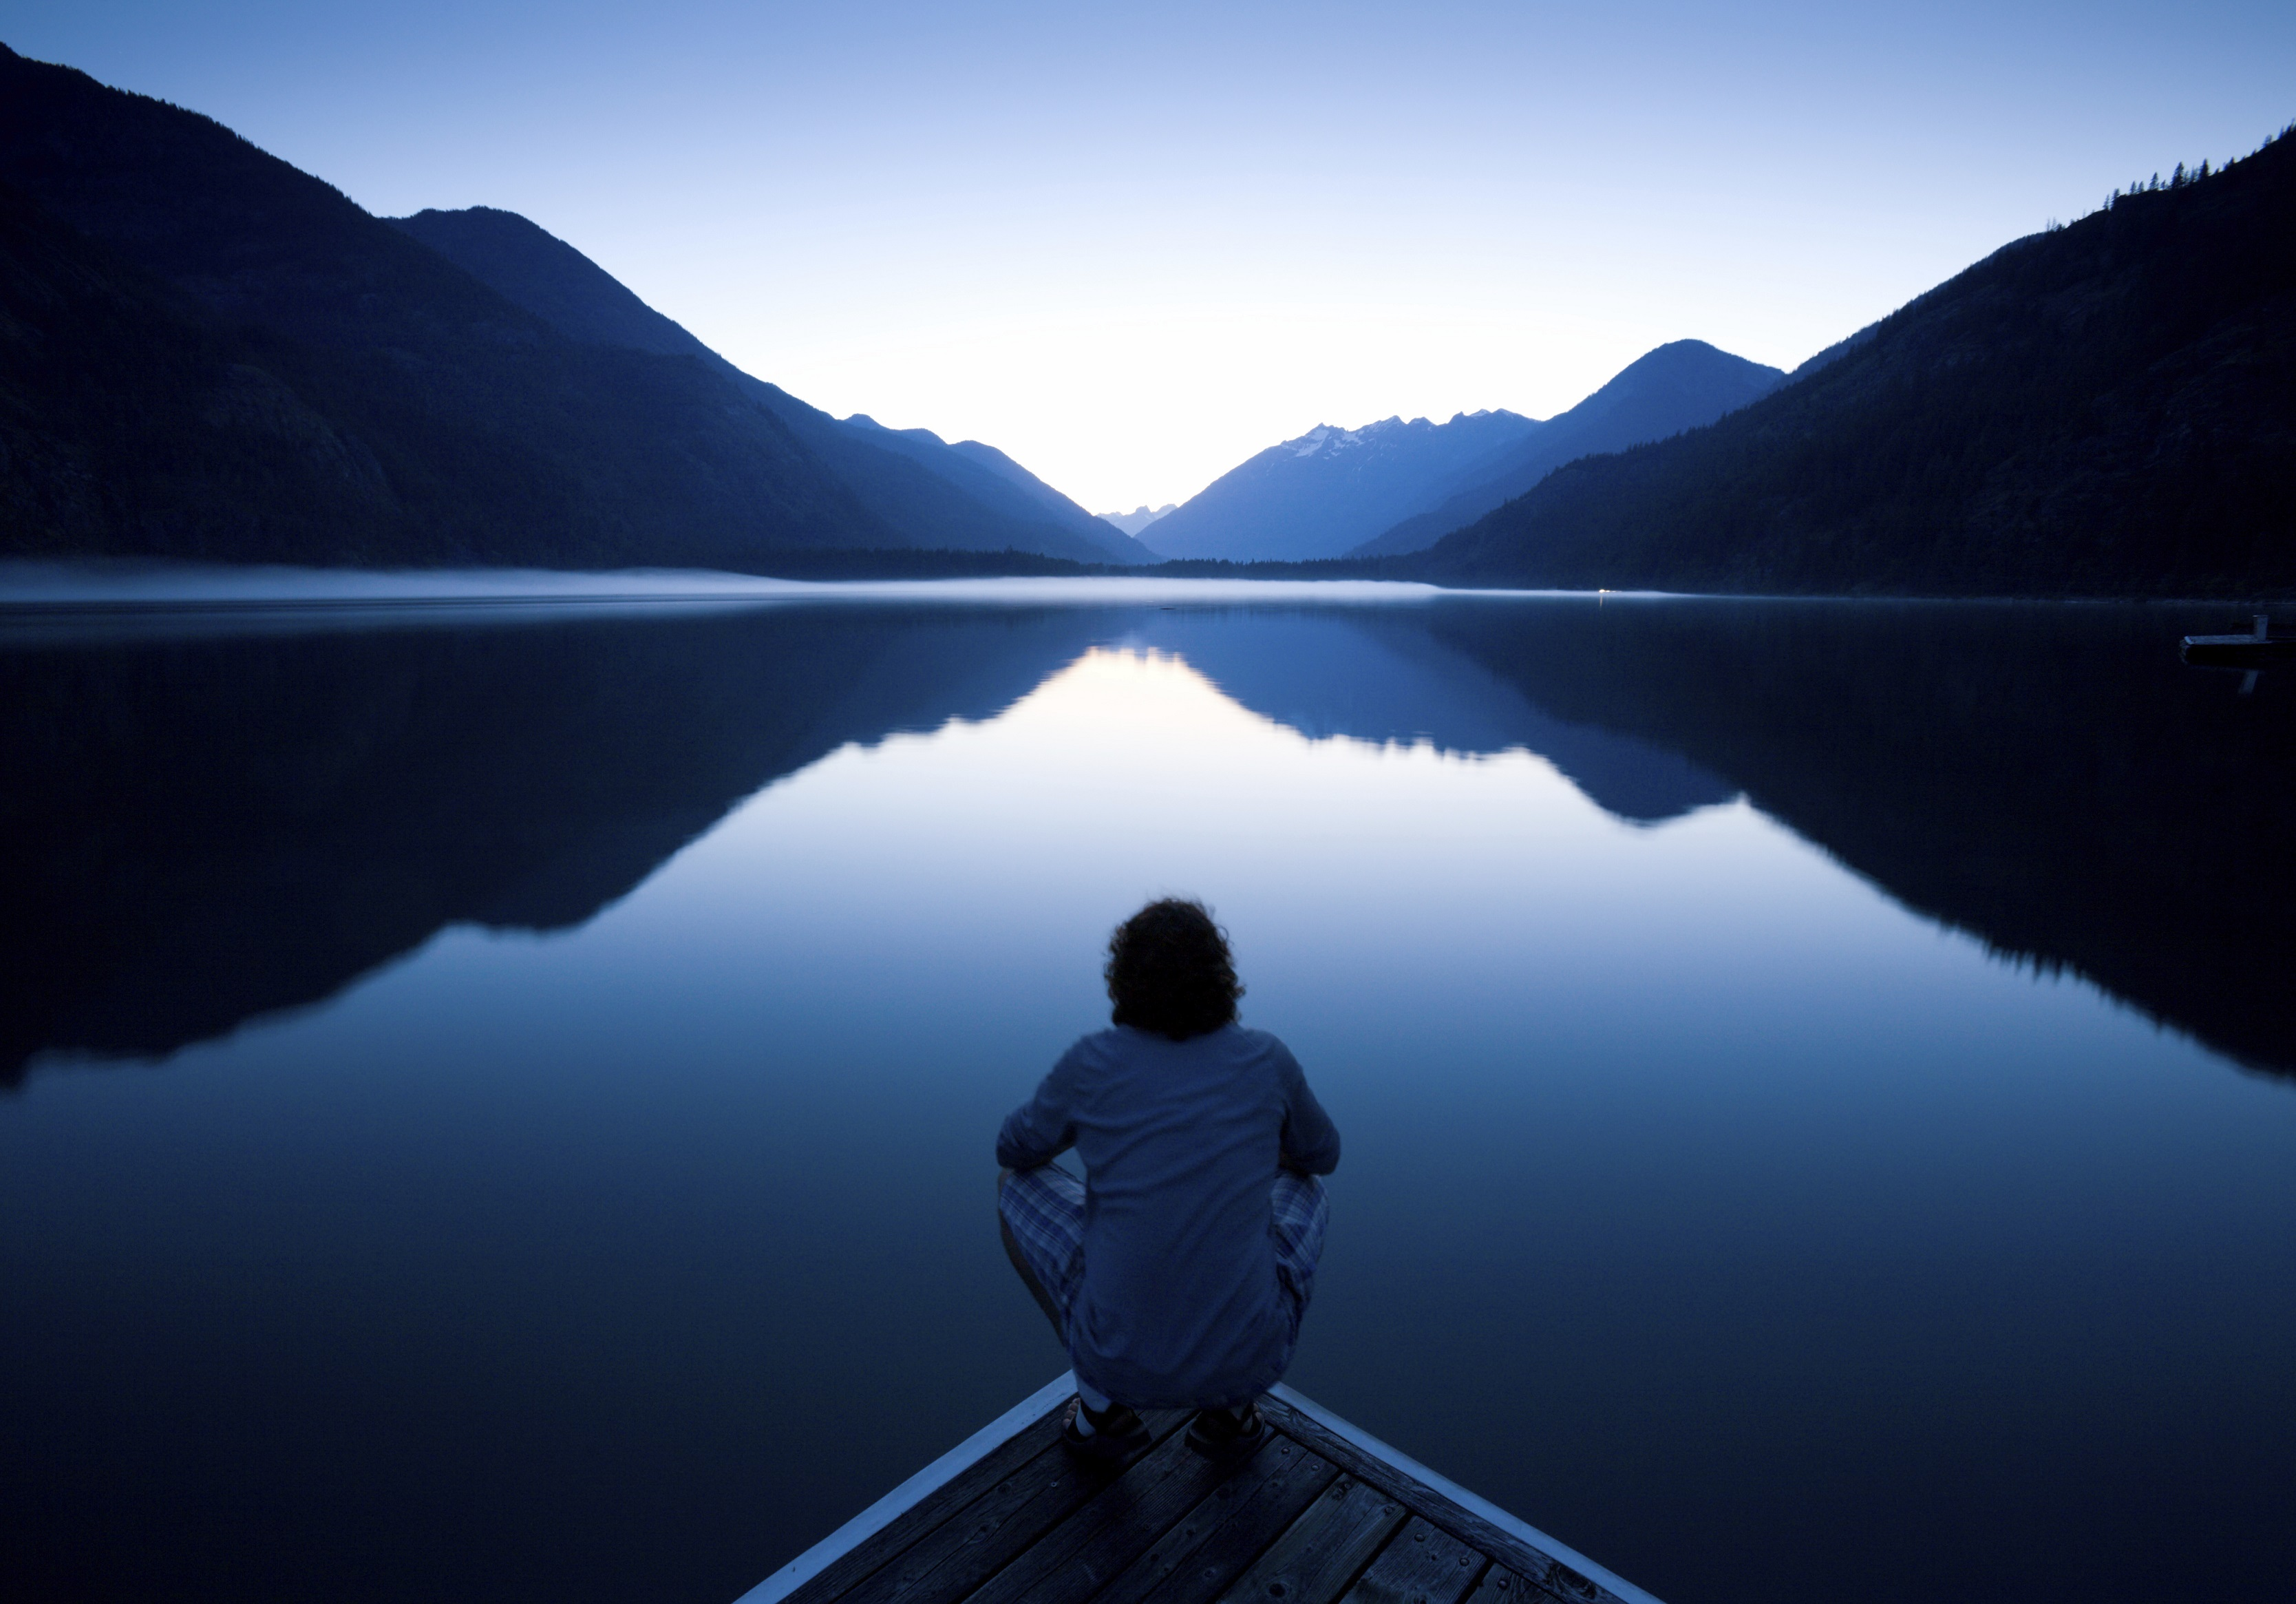 Person looking at lake and mountains